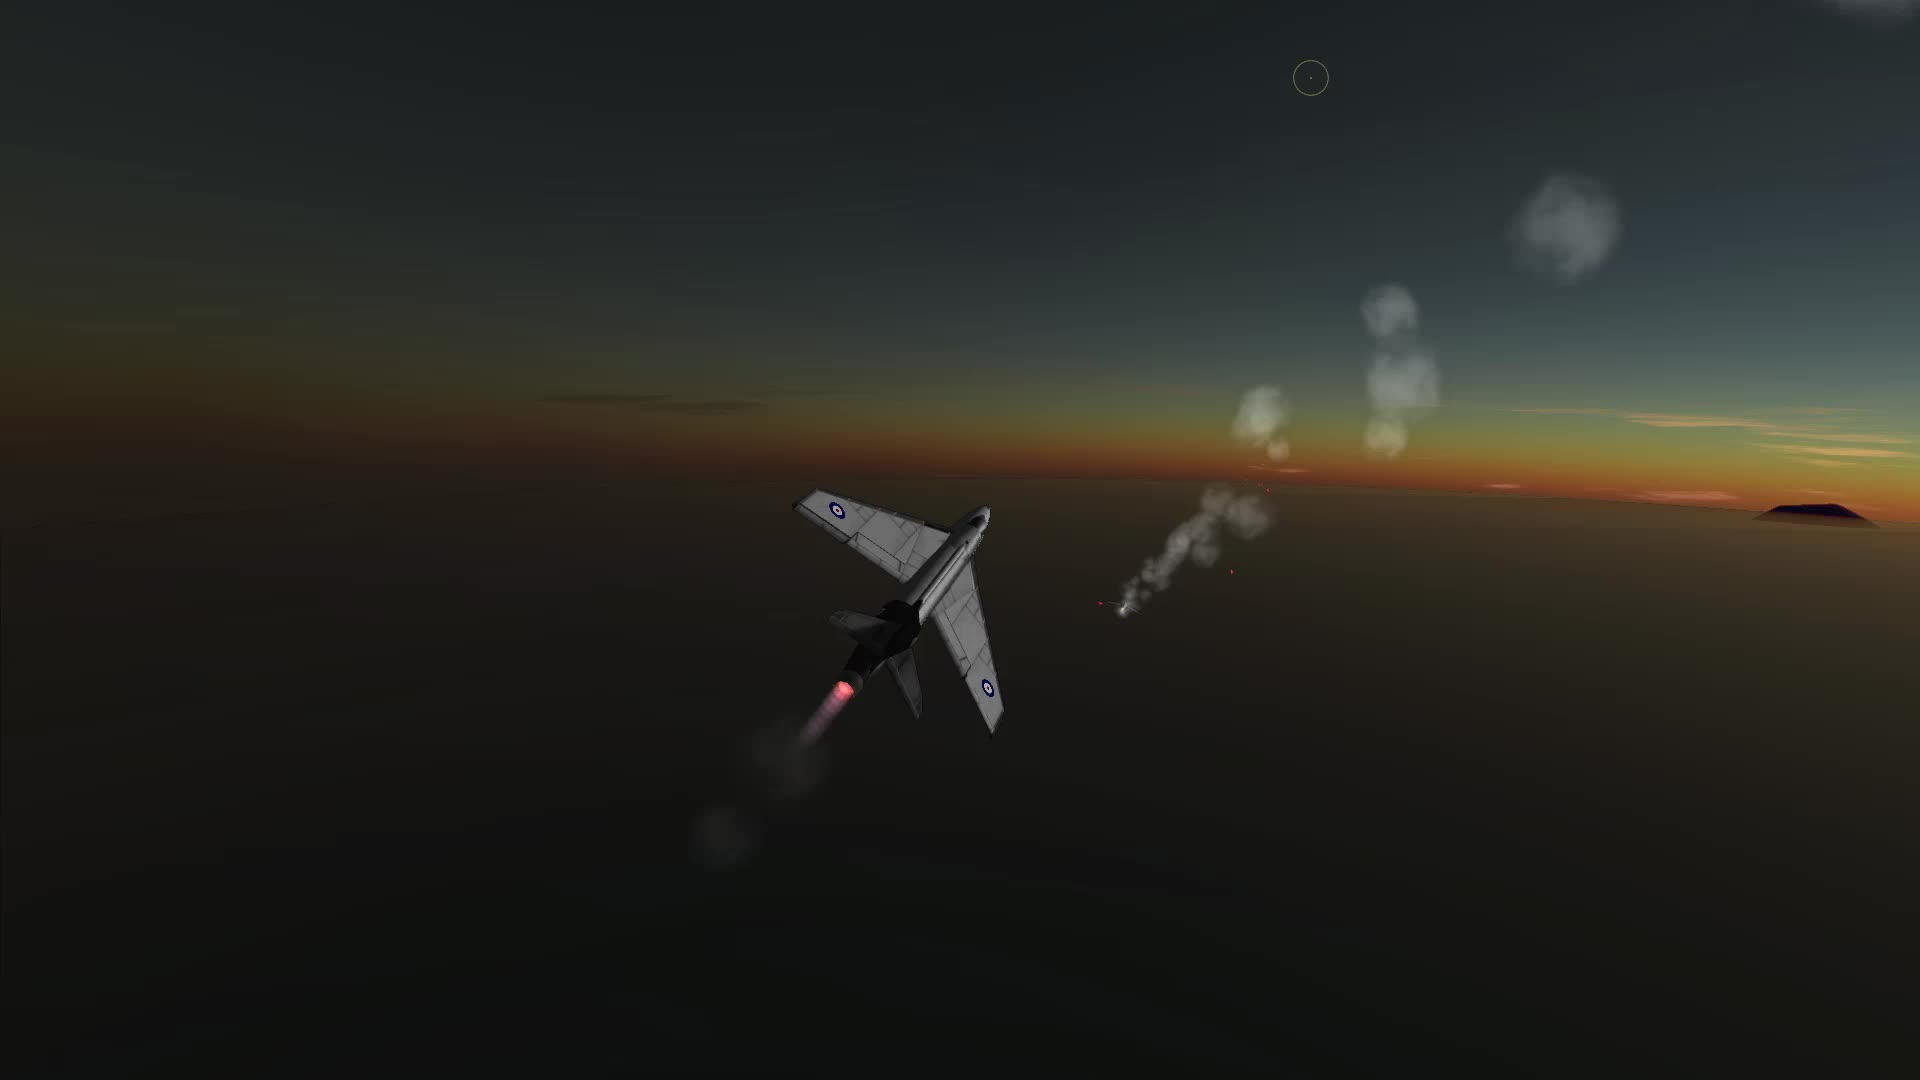 BDArmoury, Dogfight, KSP, Kerbal Space program, Hunter F1 vs MiG 17 GIFs